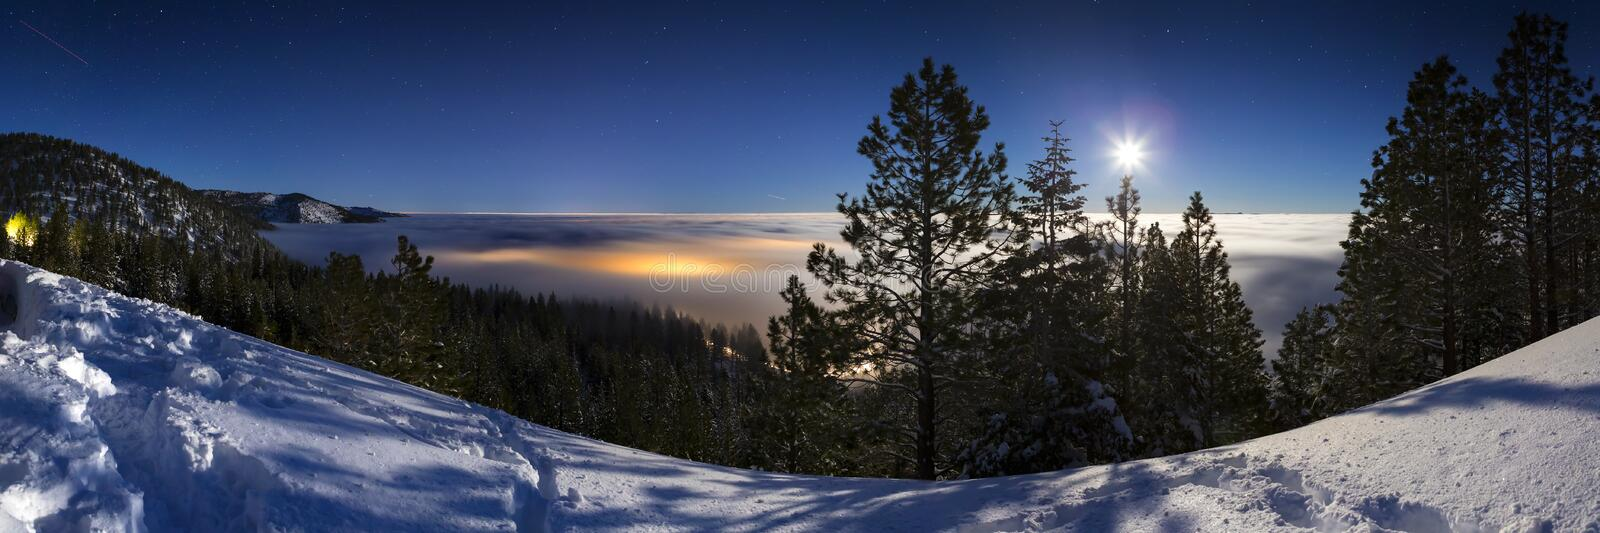 Cold Winter Snowy landscape at night with cloud inversion covering city lights that glow underneath the cloud cover. Lit with moo. Nlight and the sky has stars stock photo